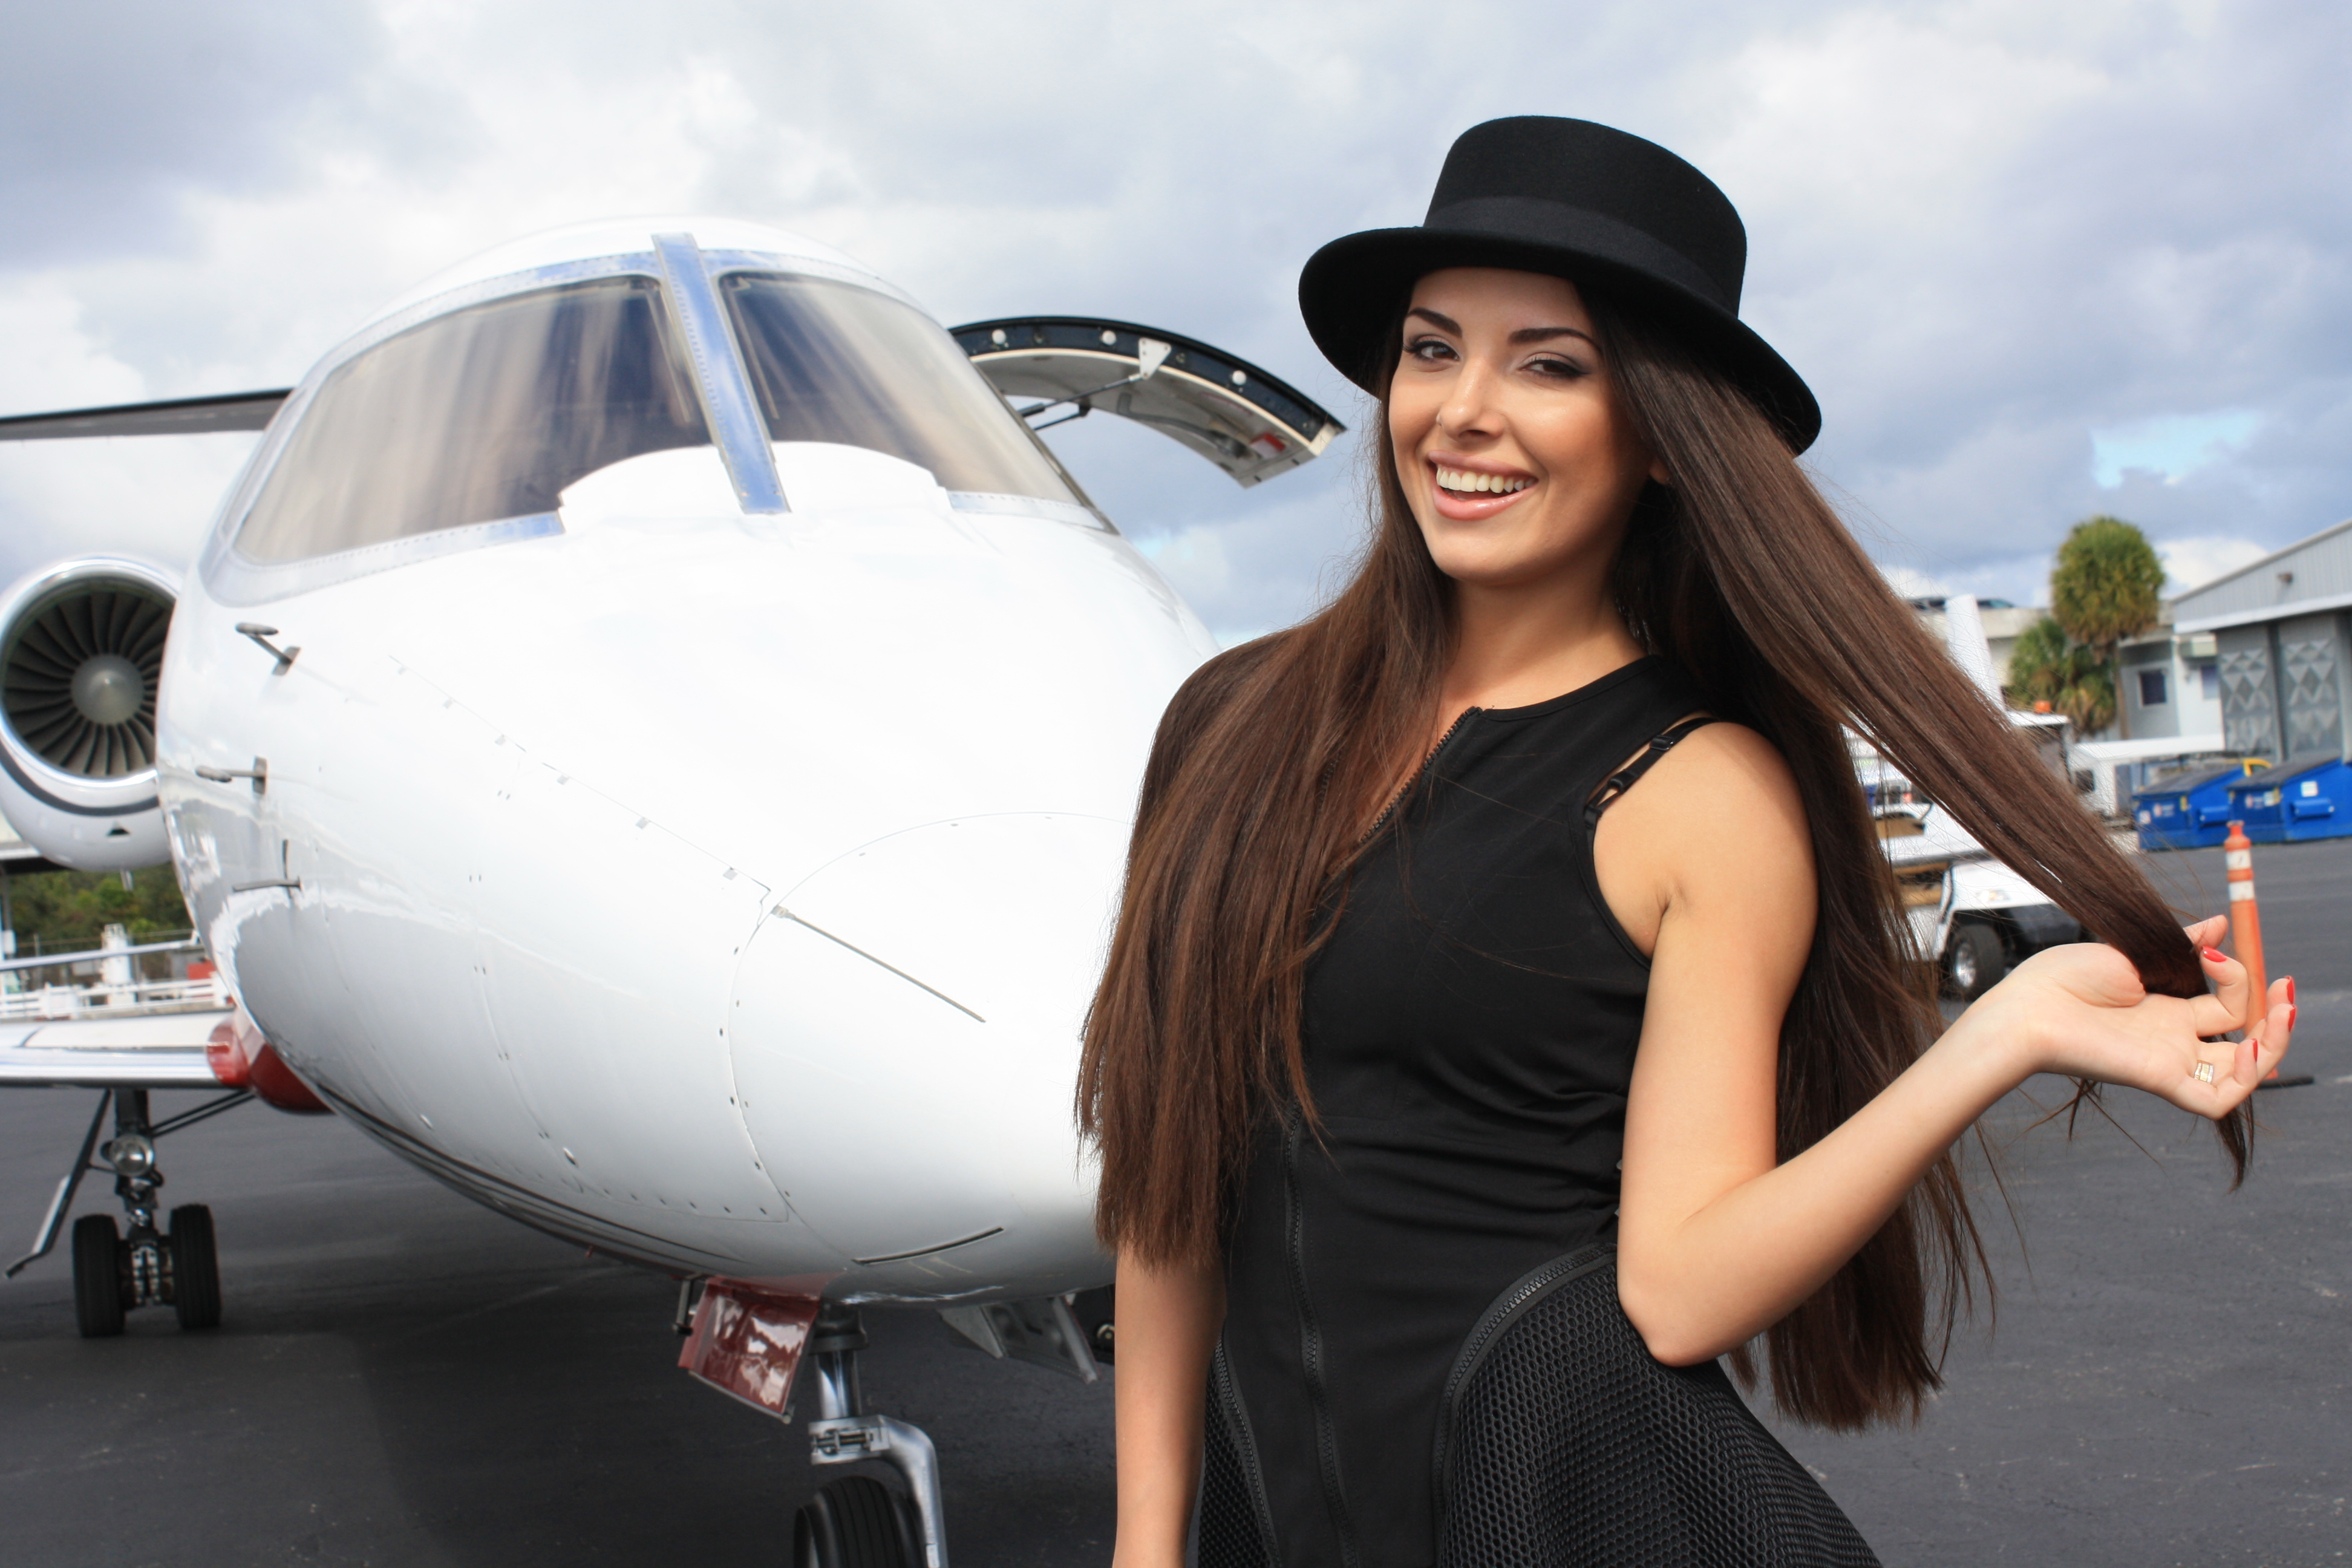 Big Spring Private Jet and Air Charter Flights